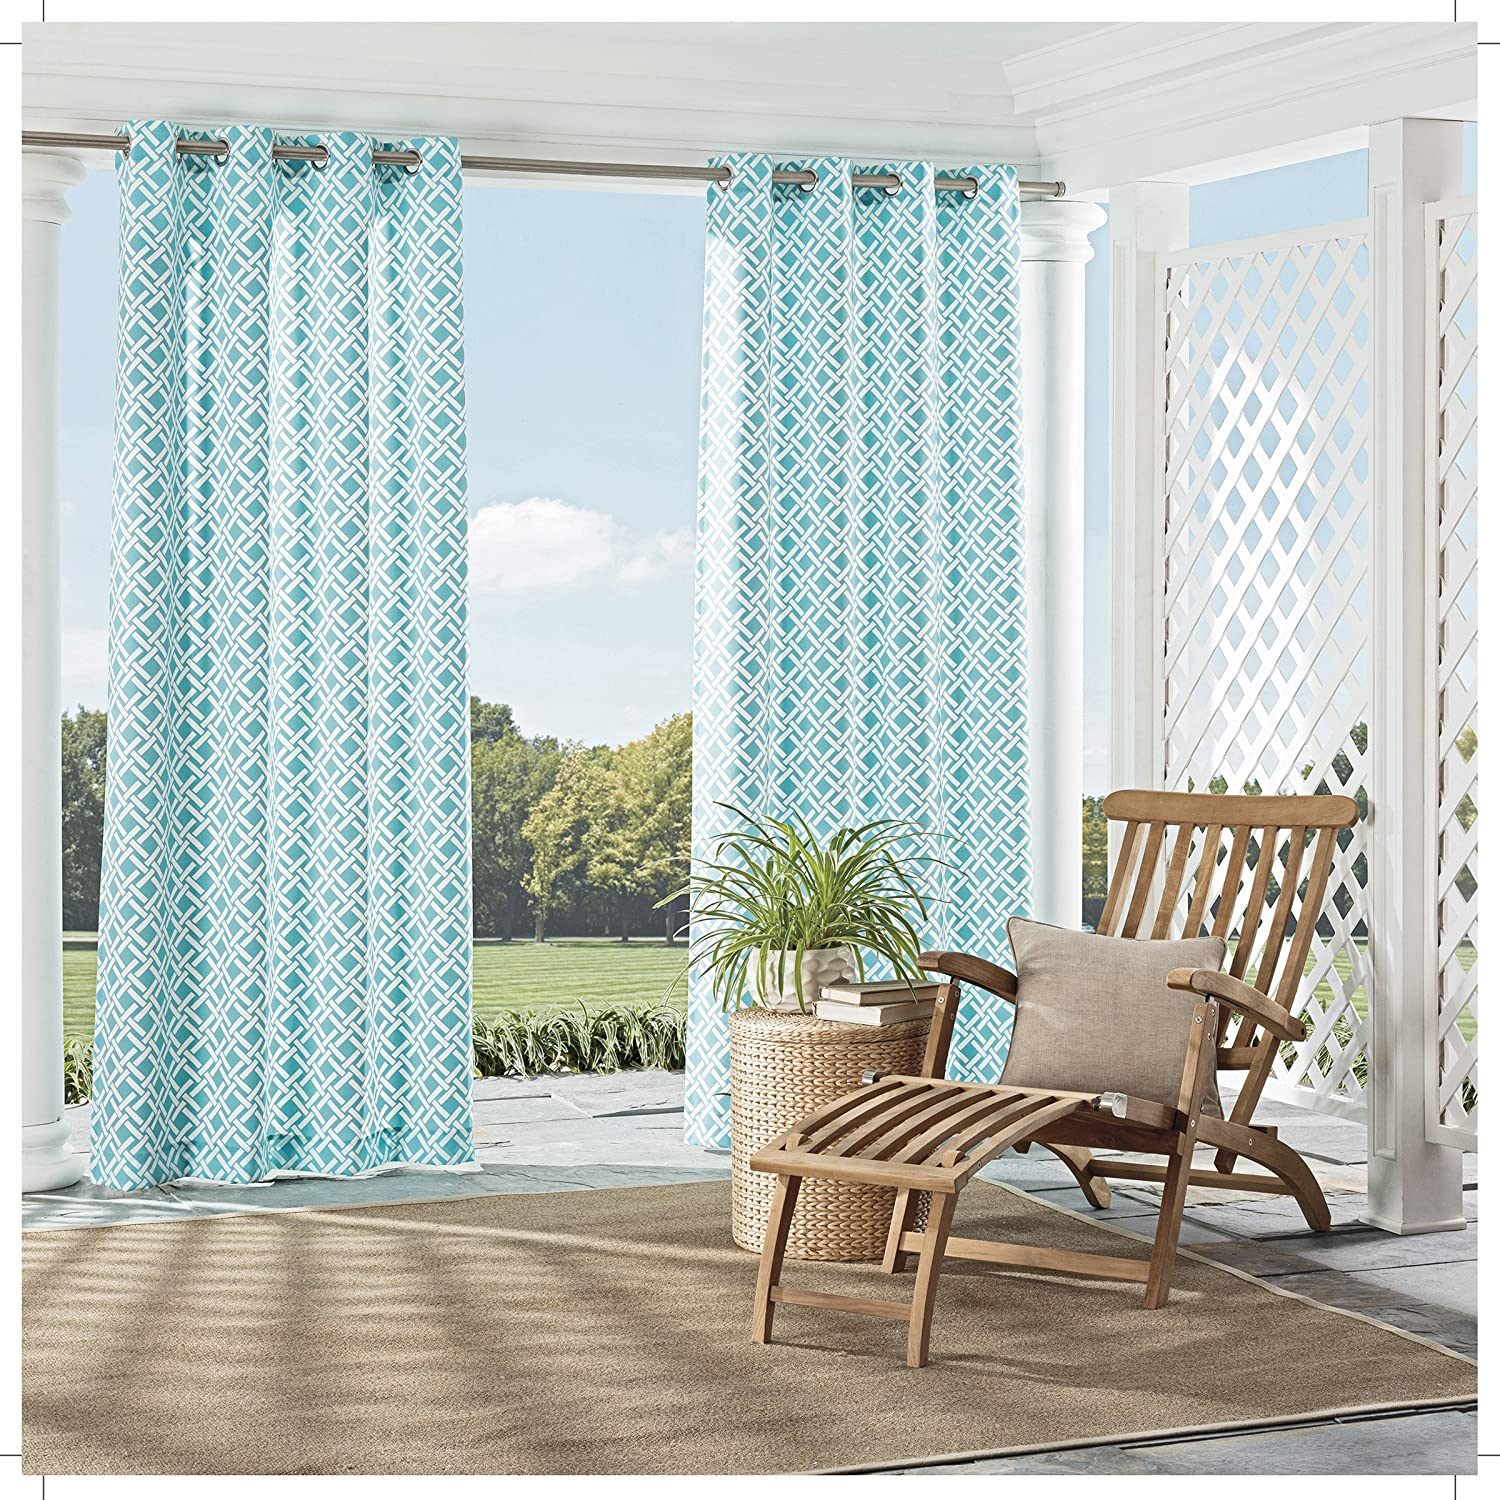 Indigo Ellery Homestyles Parasol 15932052095IND St Kitts 52-Inch by 95-Inch Indoor Outdoor Single Window Curtain Panel